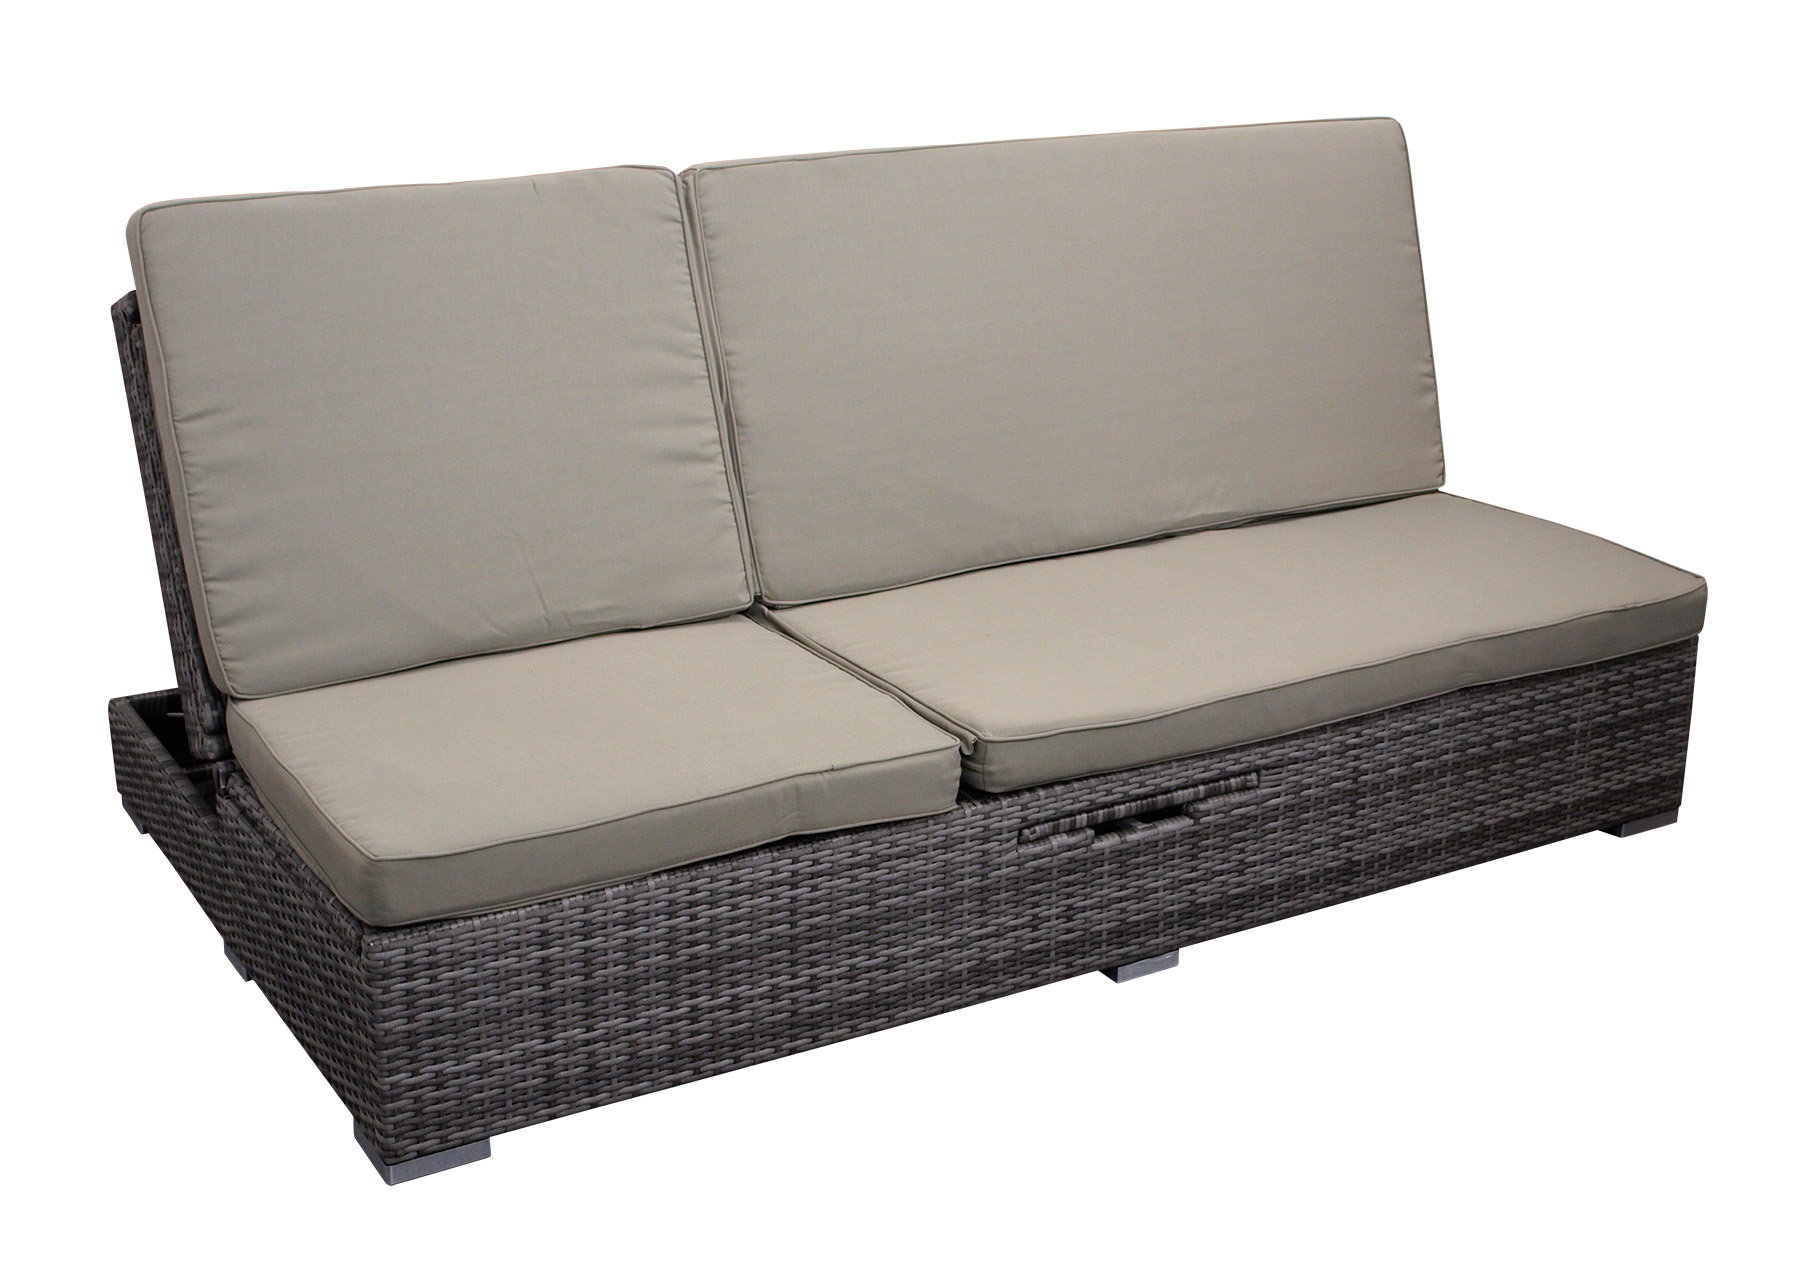 Funktions Doppelliege CALERO, Alu + Polyrattan grau-bicolor, mit Polstern taupe